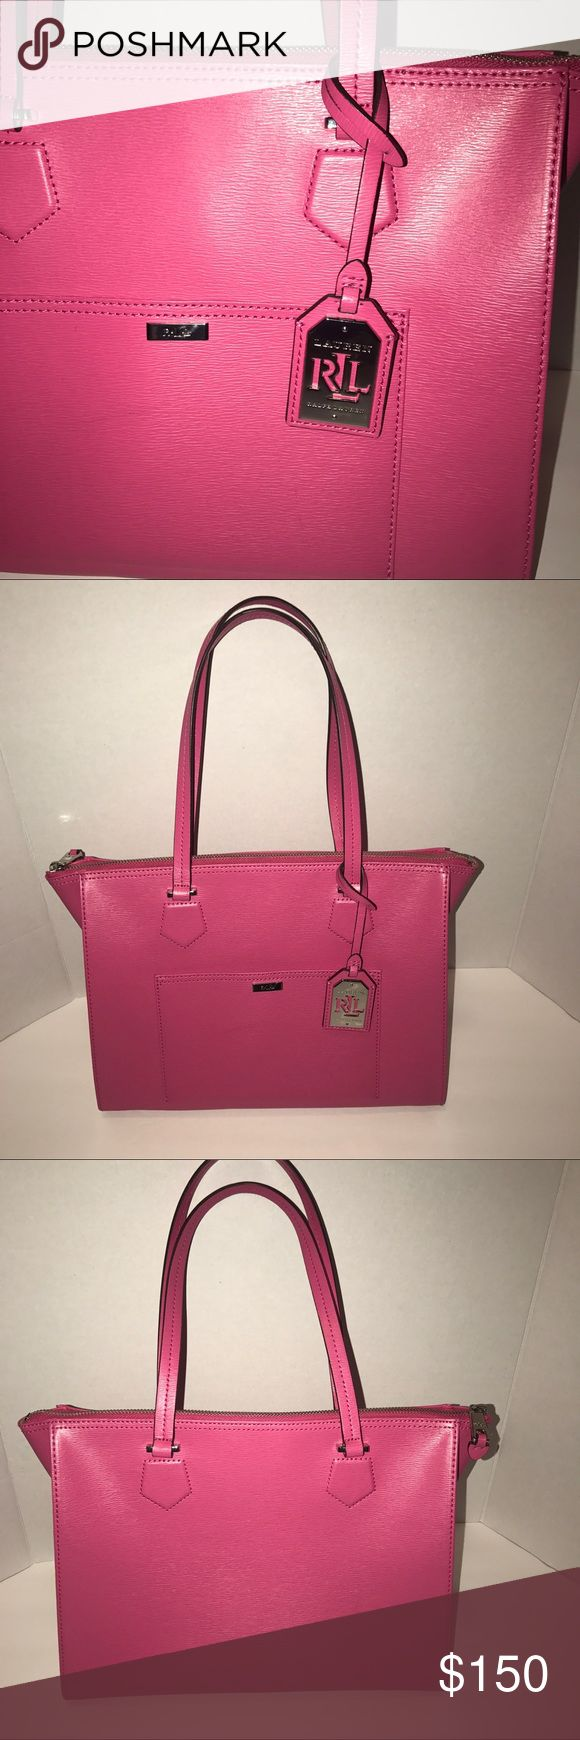 Lauren Ralph Lauren tote Pink Lauren Ralph Lauren bag, in Excellent condition ! Only used twice. Lauren Ralph Lauren Bags Totes